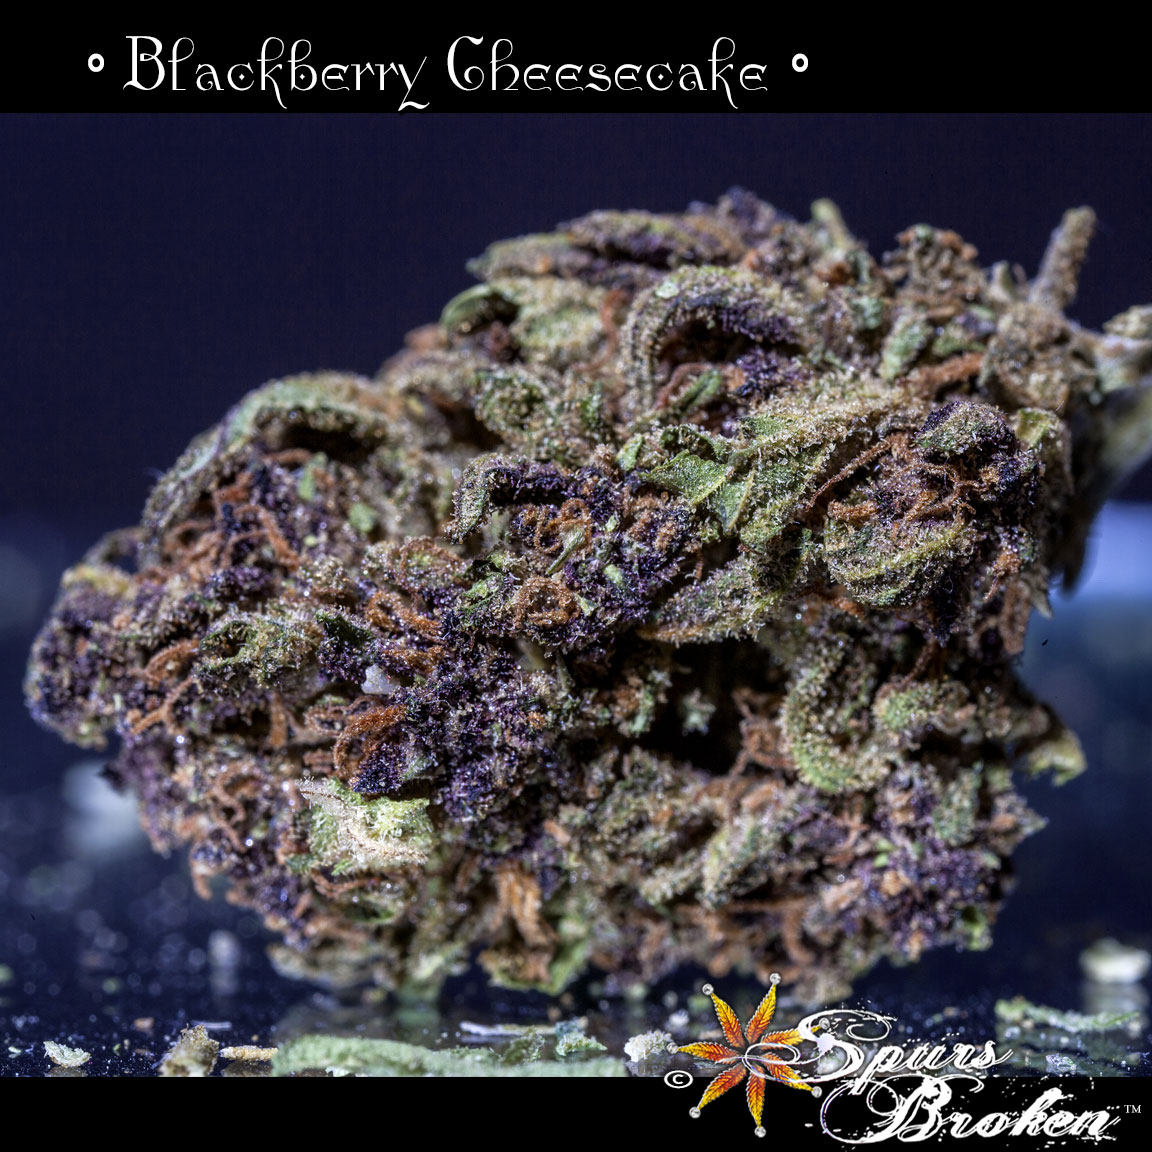 Blackberry Cheesecake - Cannabis Macro Photography by Spurs Broken (Robert R. Sanders)